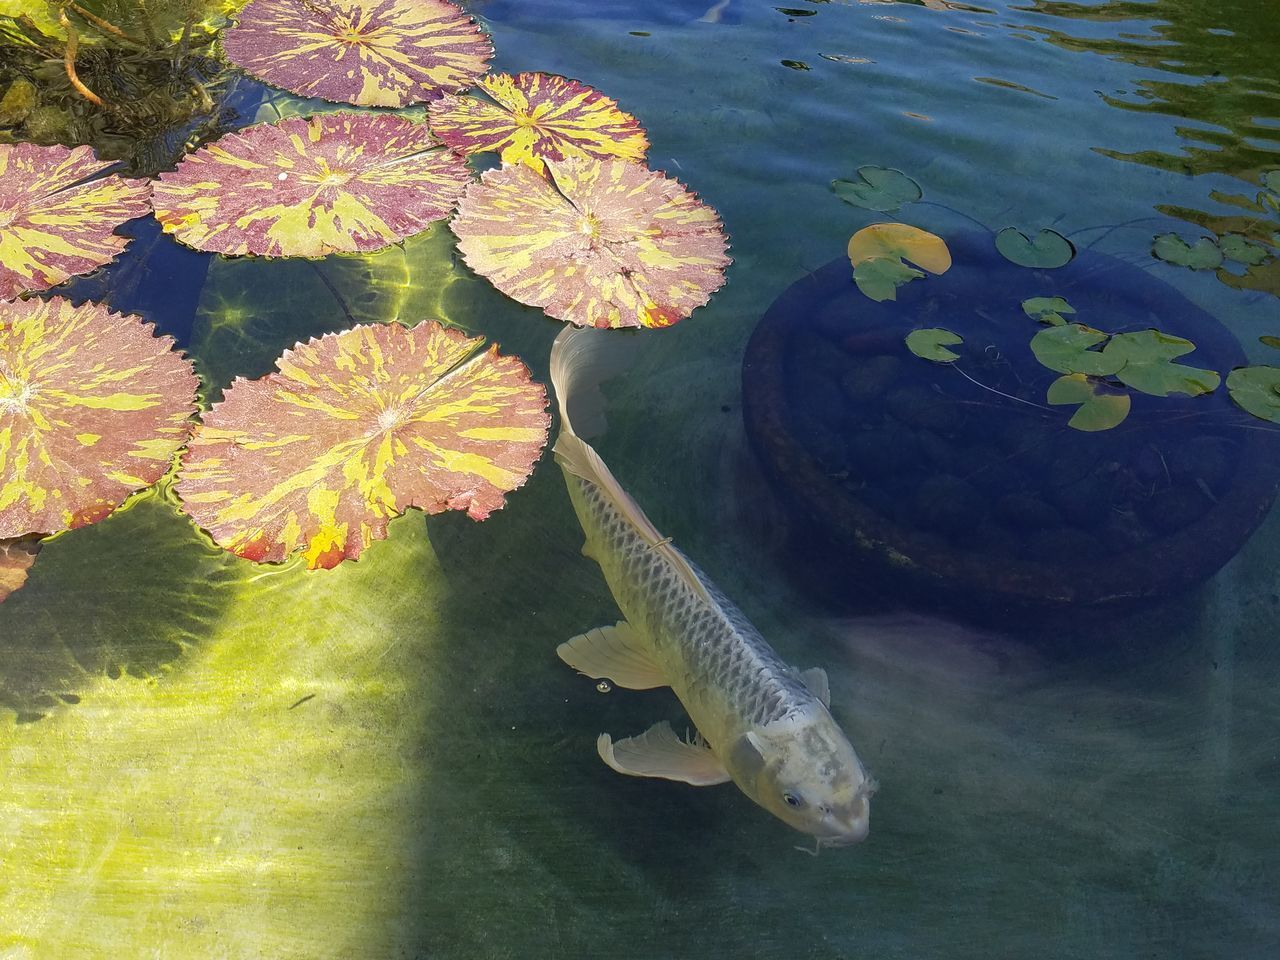 The Purist (no Edit, No Filter) Koi Lily Pad Fountain Water Surface Beauty In Nature Selective Focus Tranquil Scene Nature_collection Tranquility Fine Art Photography Check This Out Patterns & Textures Meditation Zen Nature Plant Life Botany Natural Pattern Natural Color Multi Colored Softness Peaceful Natural Beauty Nature_perfection Adapted To The City